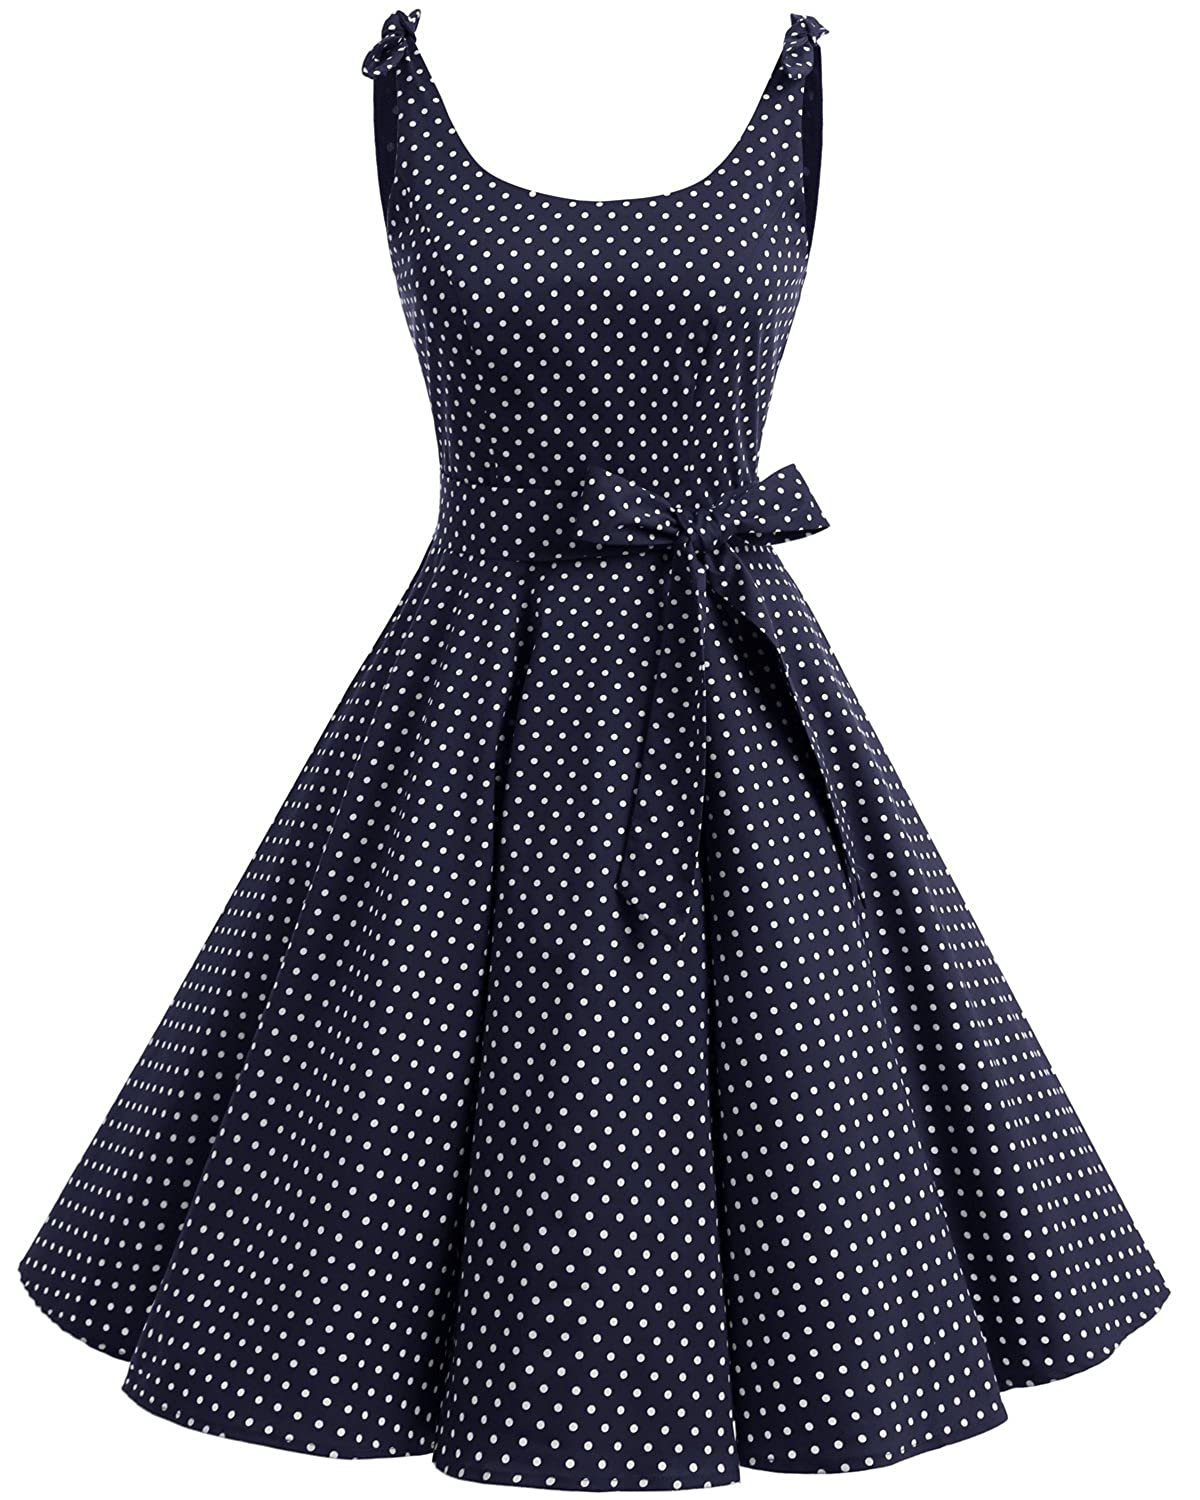 TALLA 3XL. Bbonlinedress Vestidos de 1950 Estampado Vintage Retro Cóctel Rockabilly con Lazo Navy White Dot 3XL